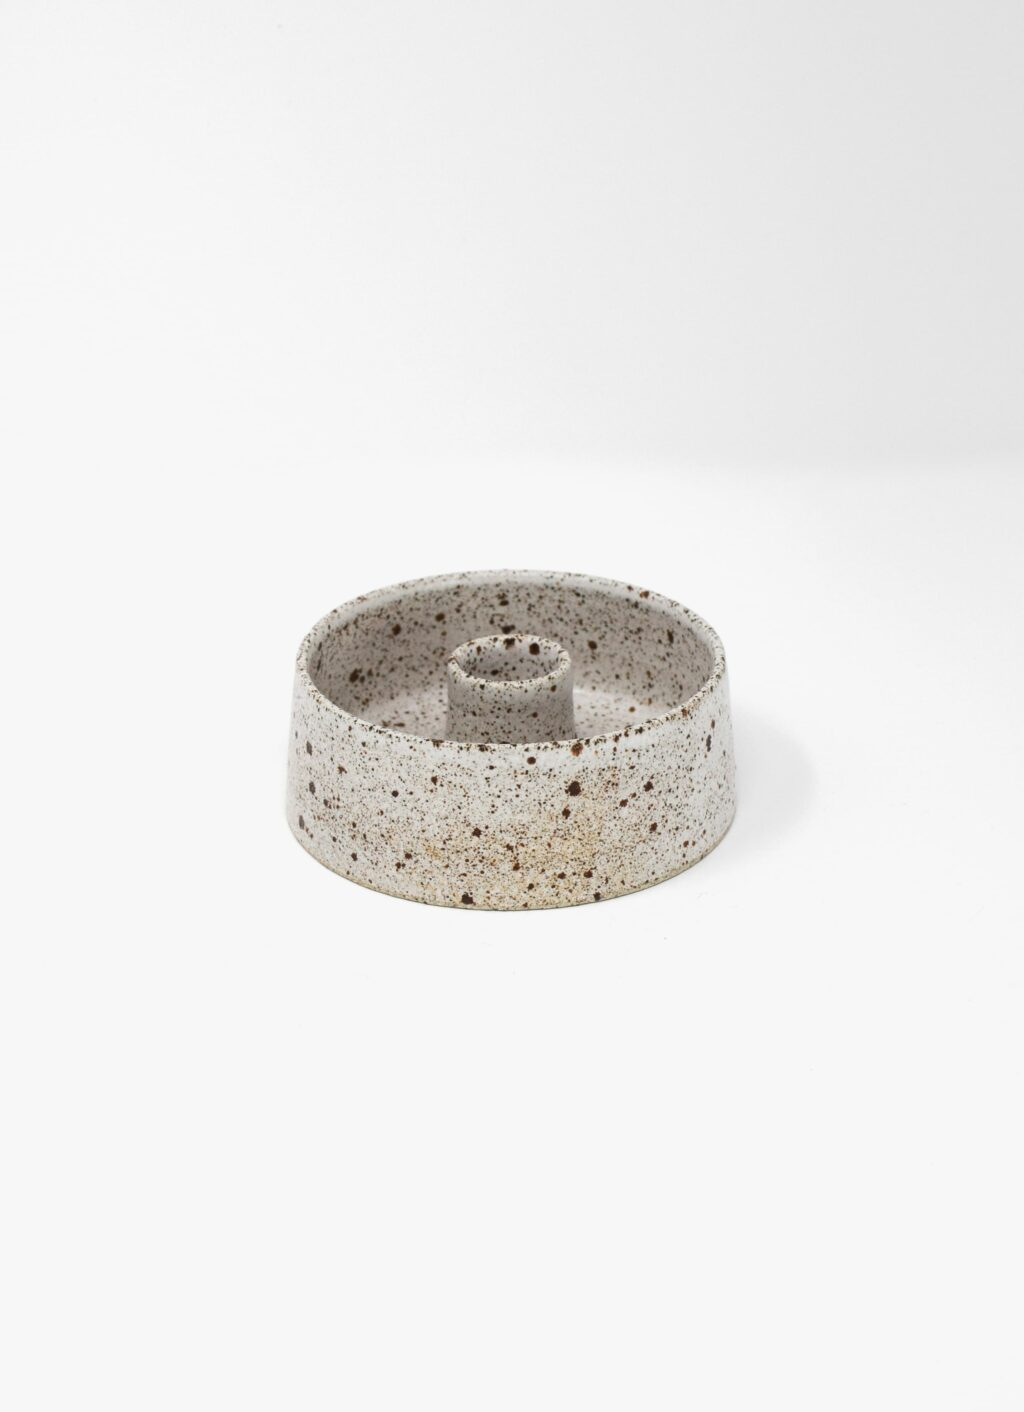 Viki Weiland - Handmade Stoneware - Candle Holder - small bowl